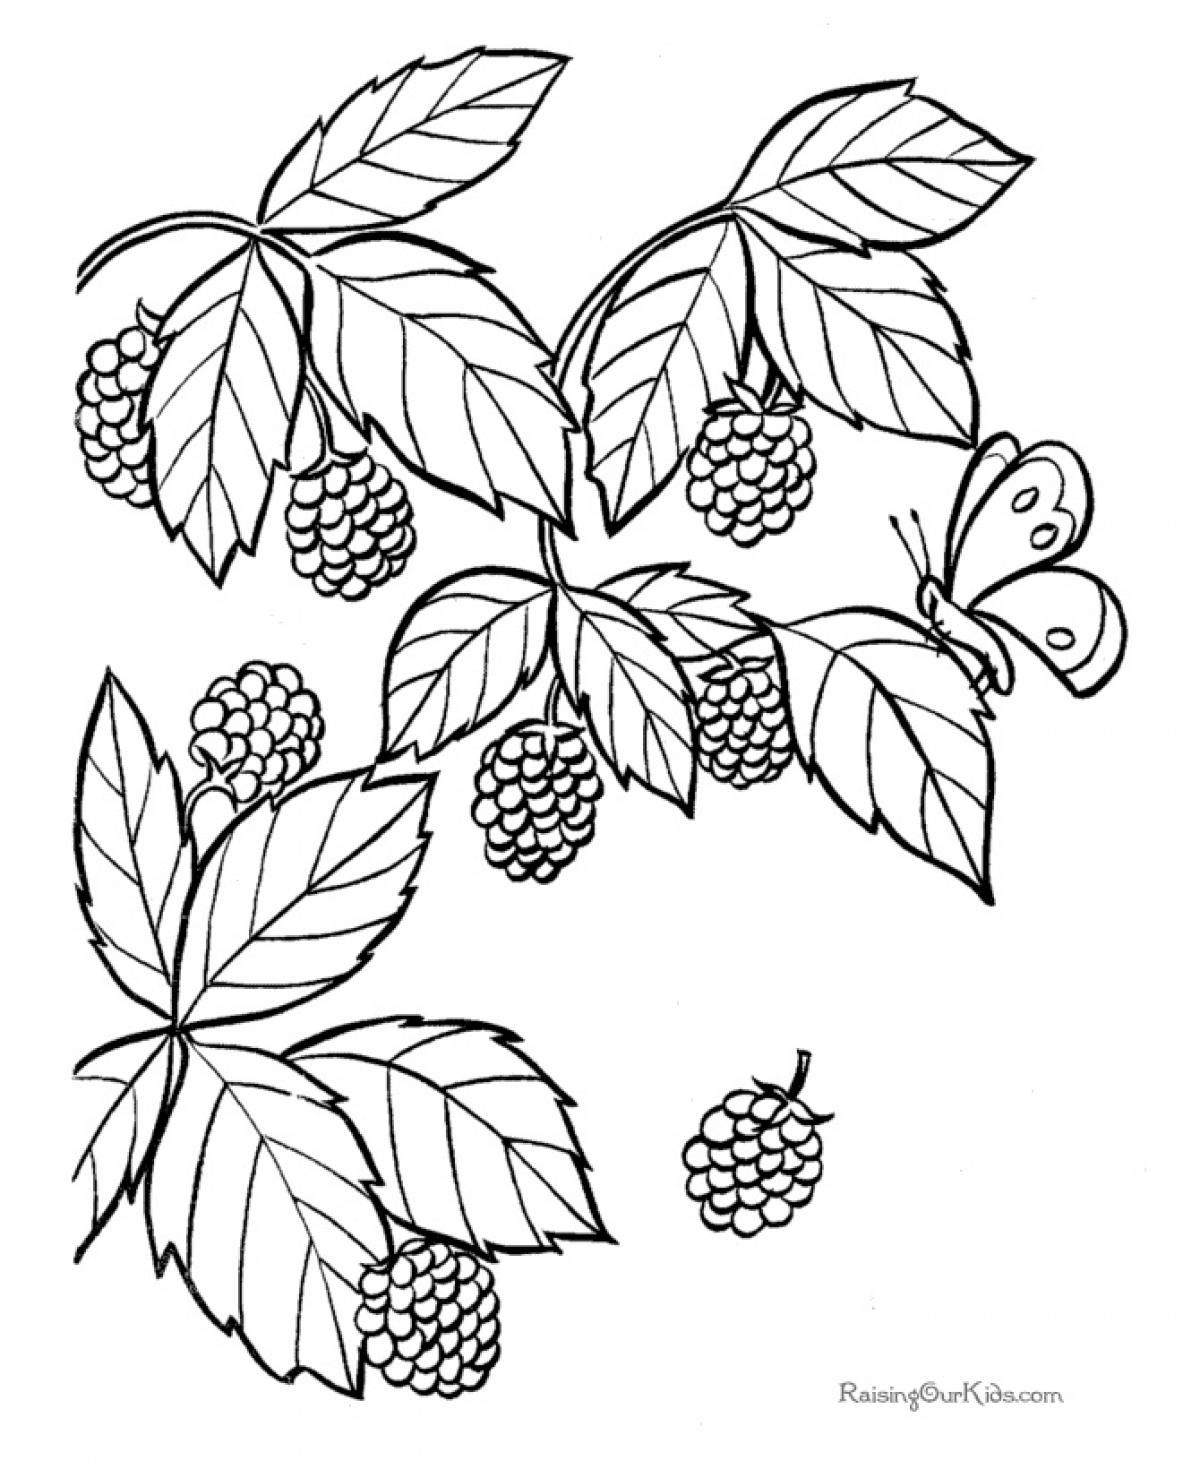 Advice Blackberry Coloring Page Fruit Drawing At Getdrawings Free